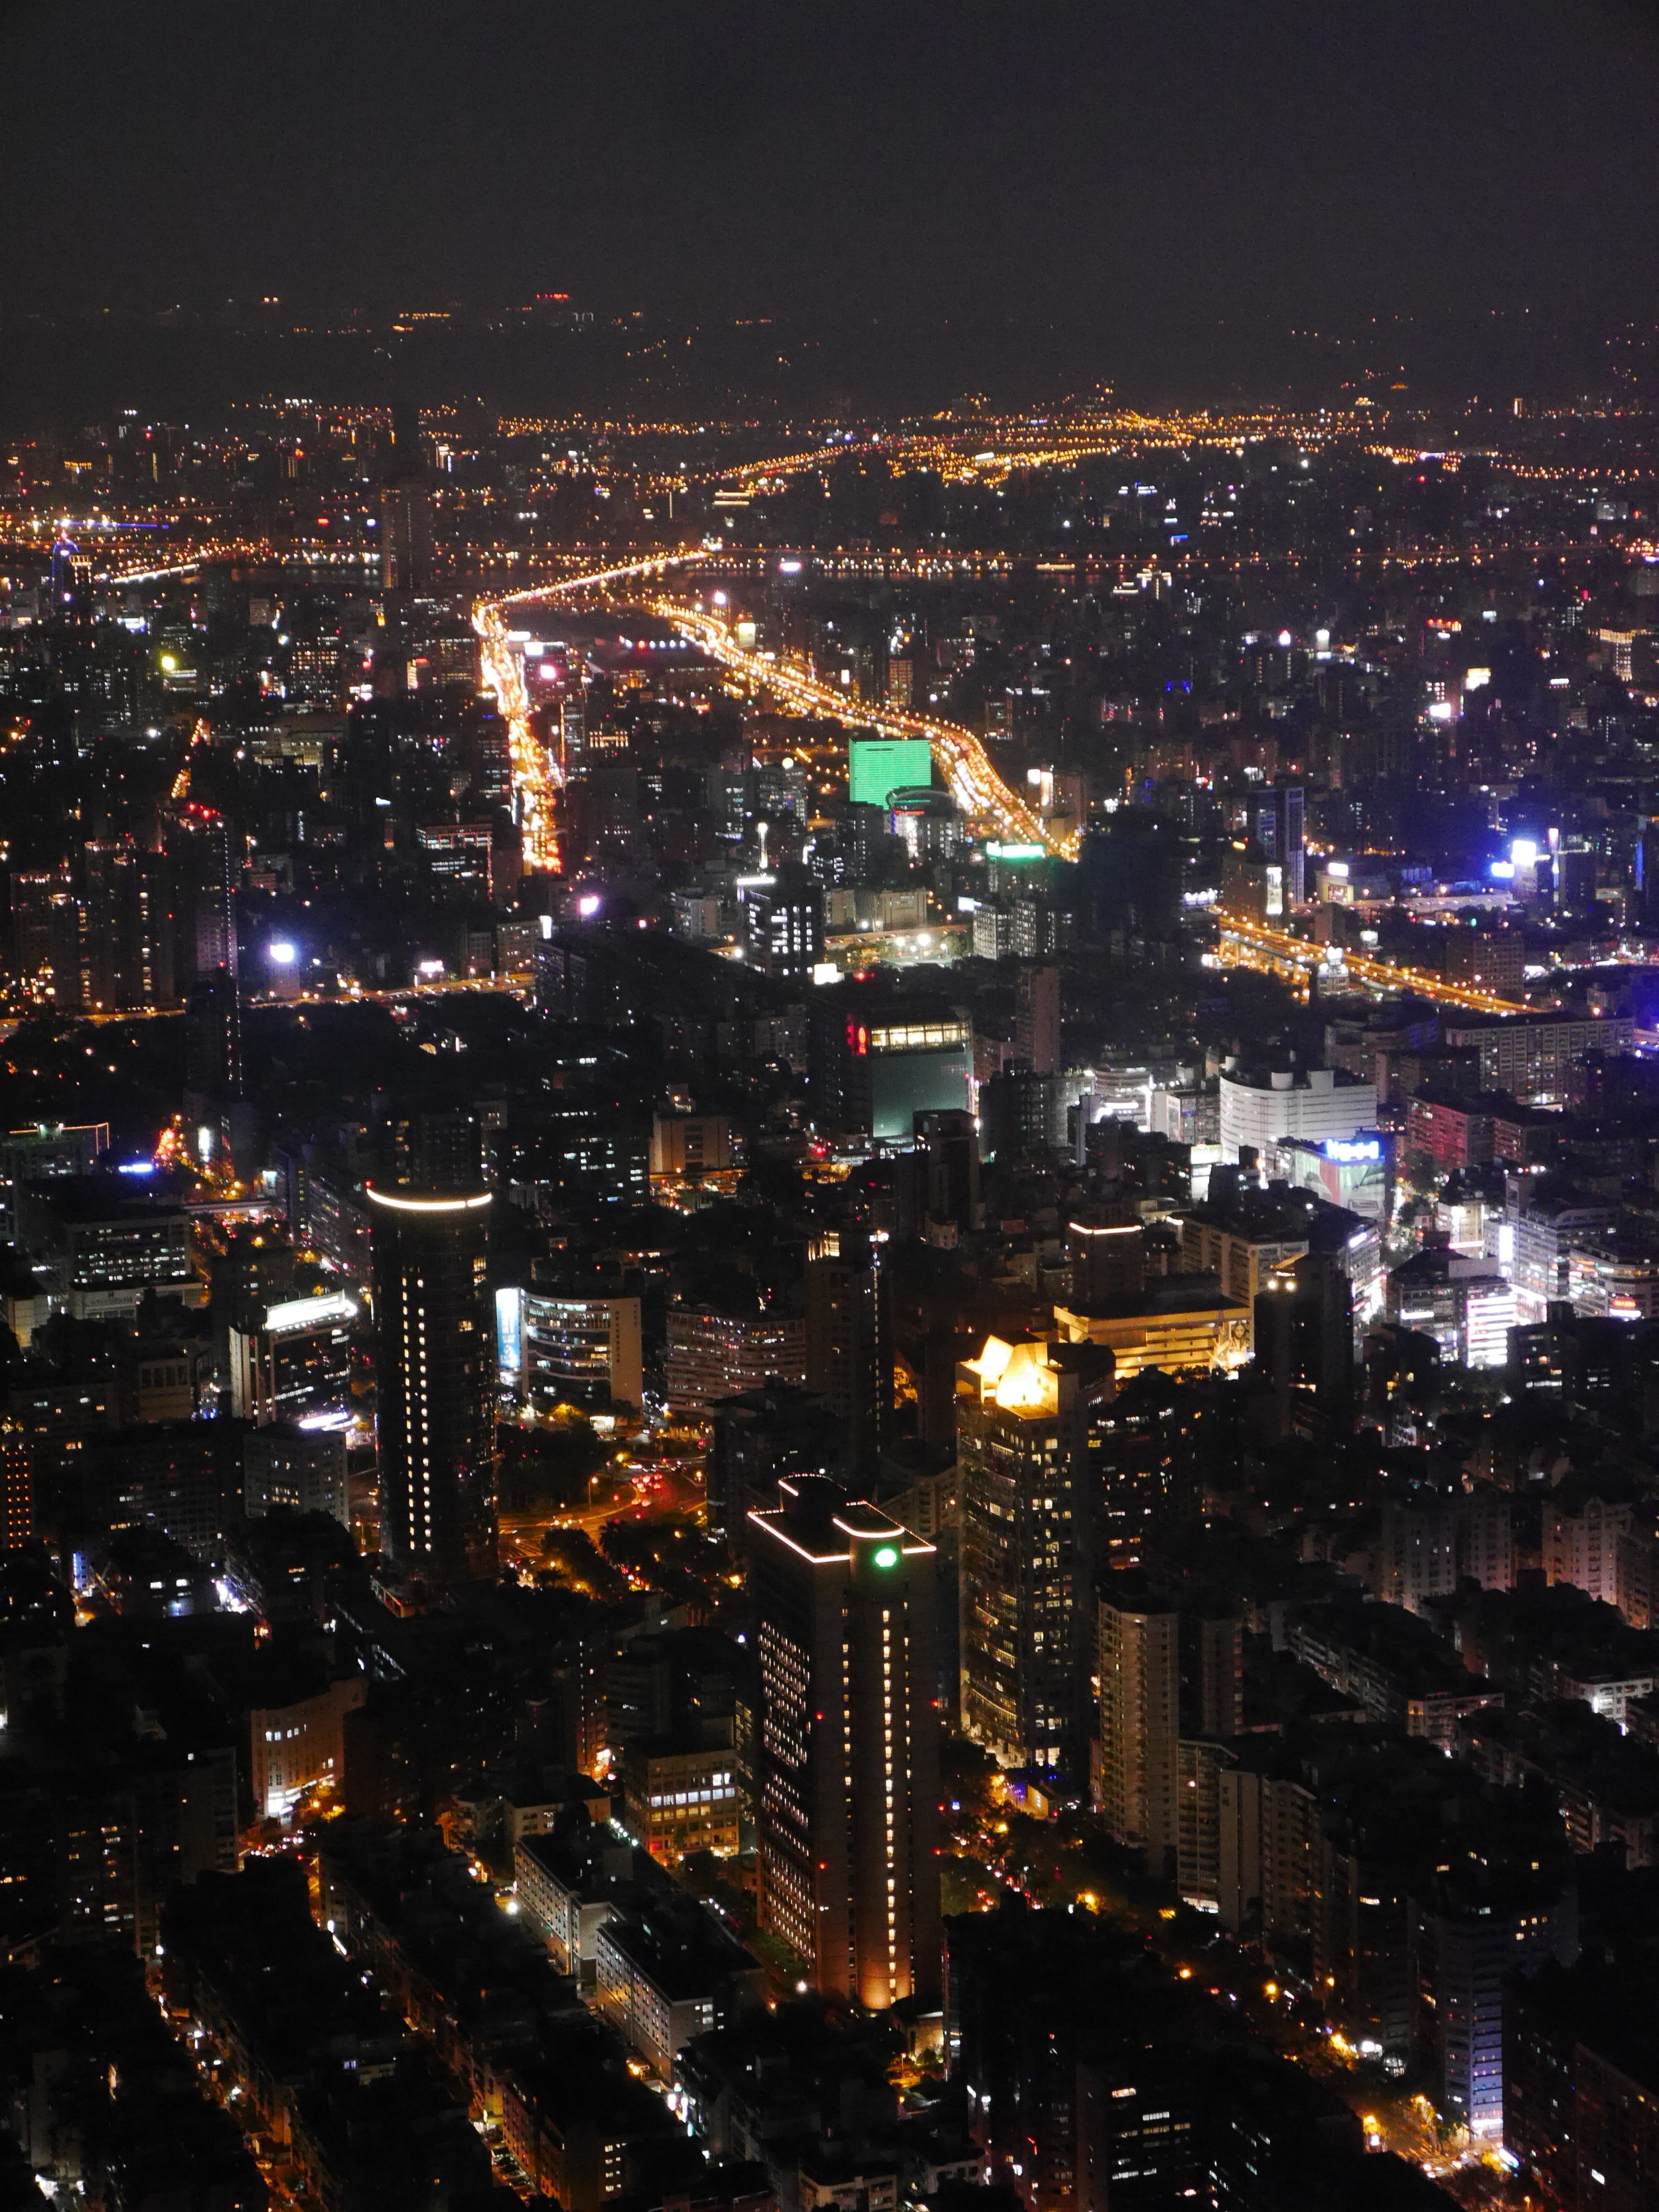 Another view of Taipei at night.